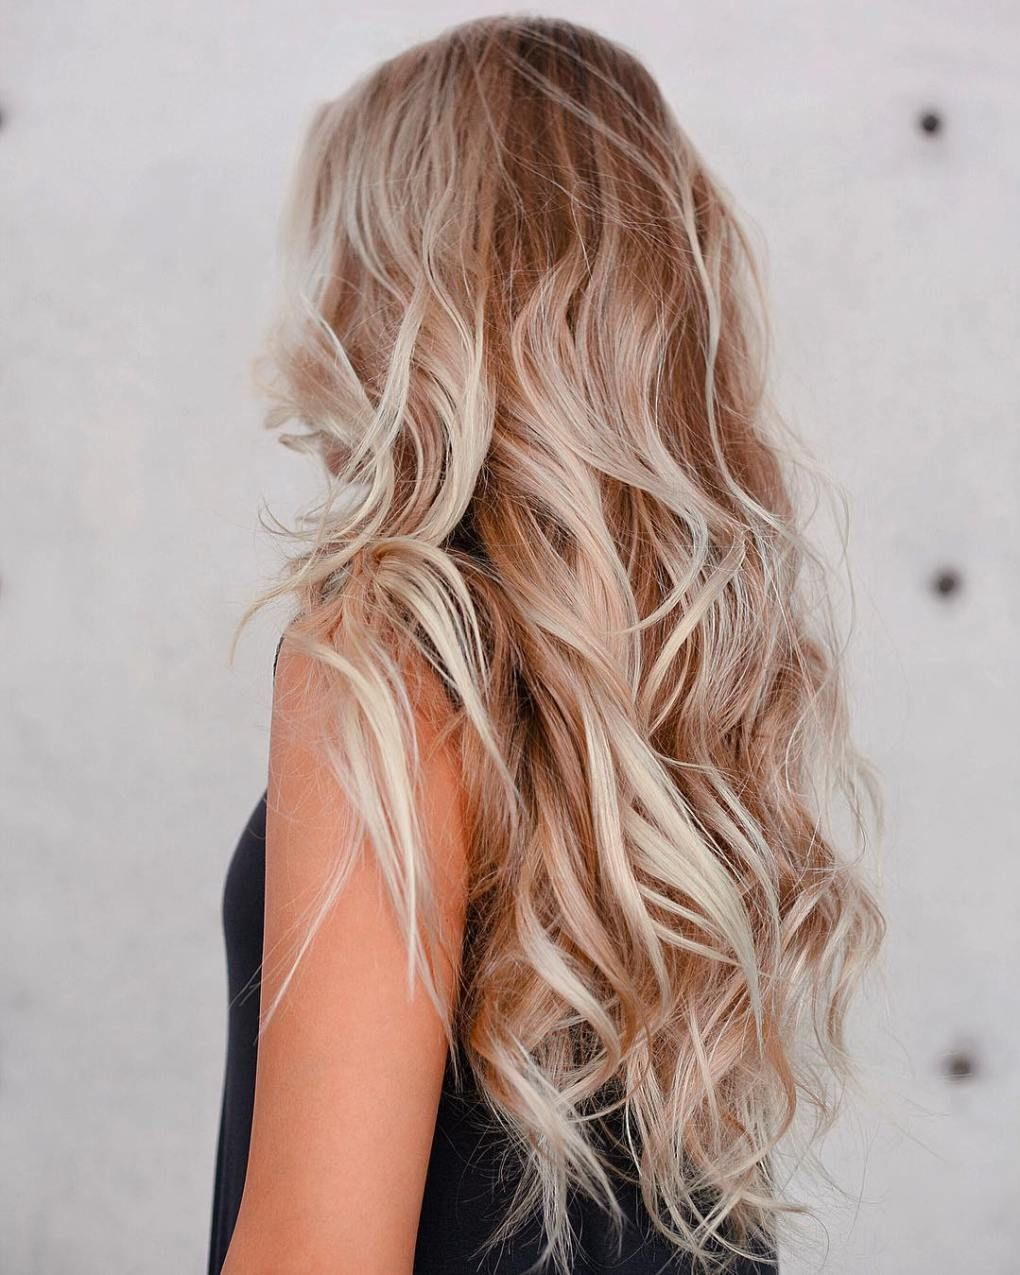 Beach Hairstyles Awesome 20 Perfect Ways To Get Beach Waves In Your Hair  Beach Waves Beach